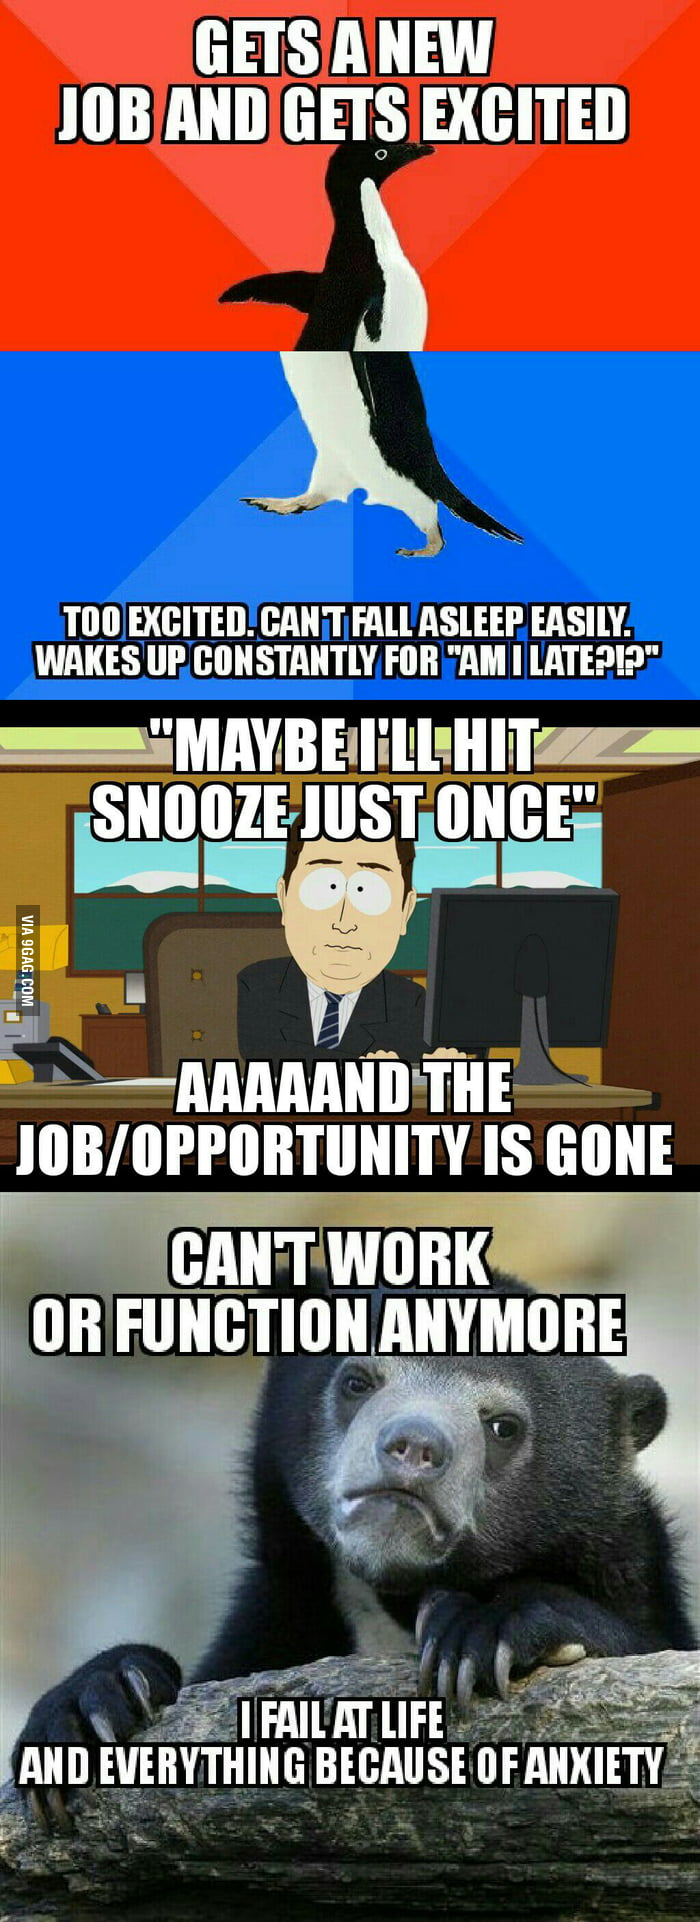 cant work anymore